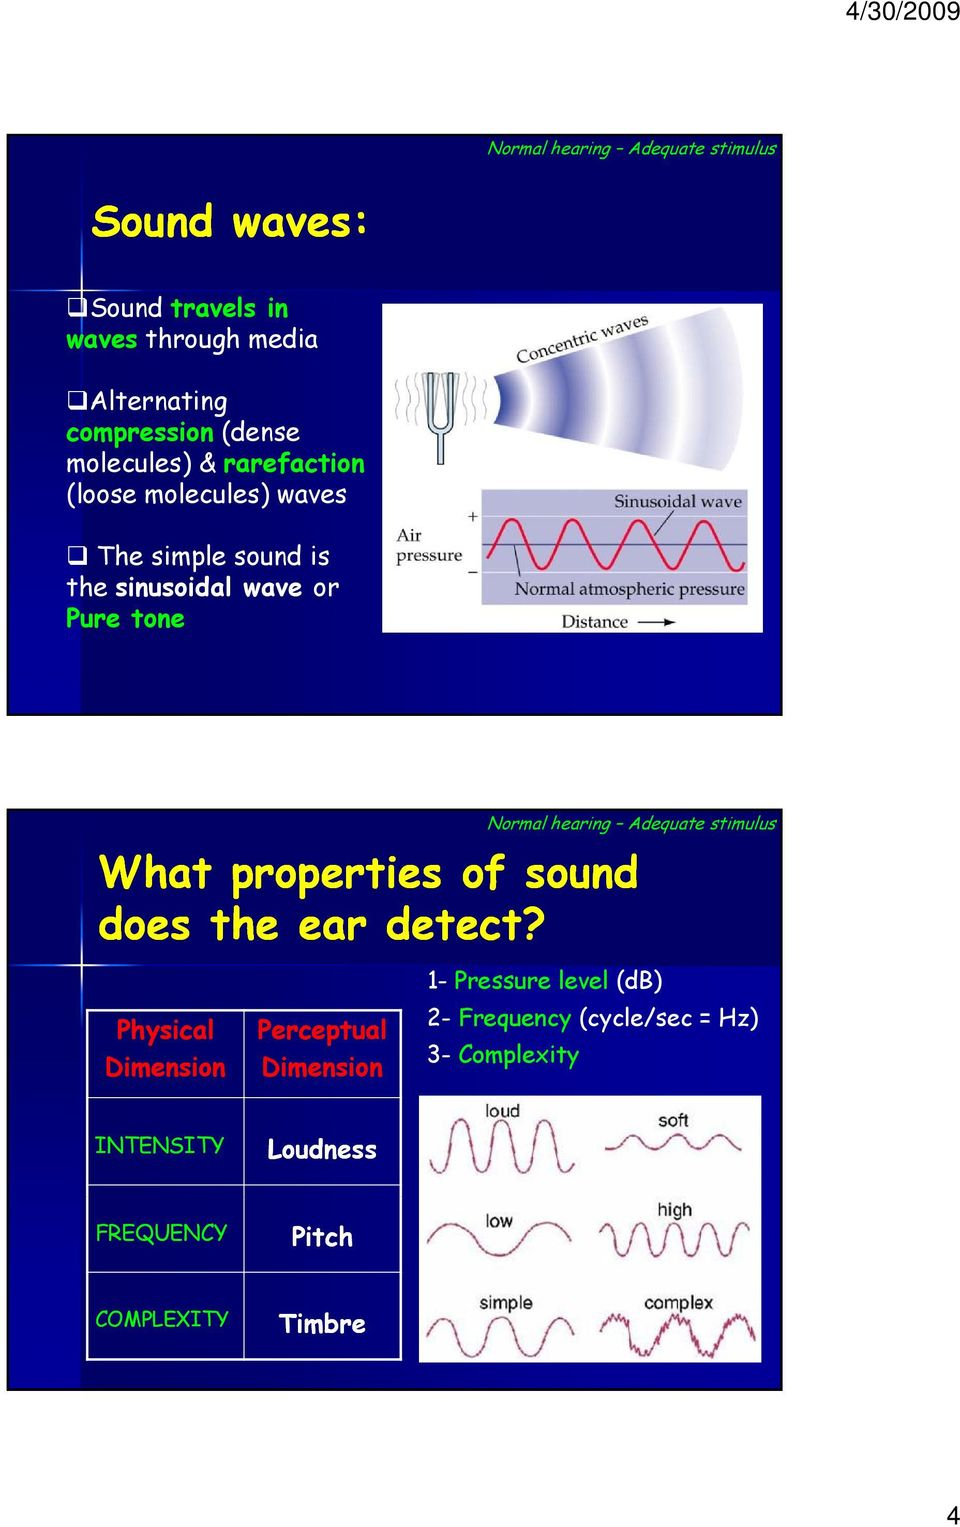 properties of sound does the ear detect?